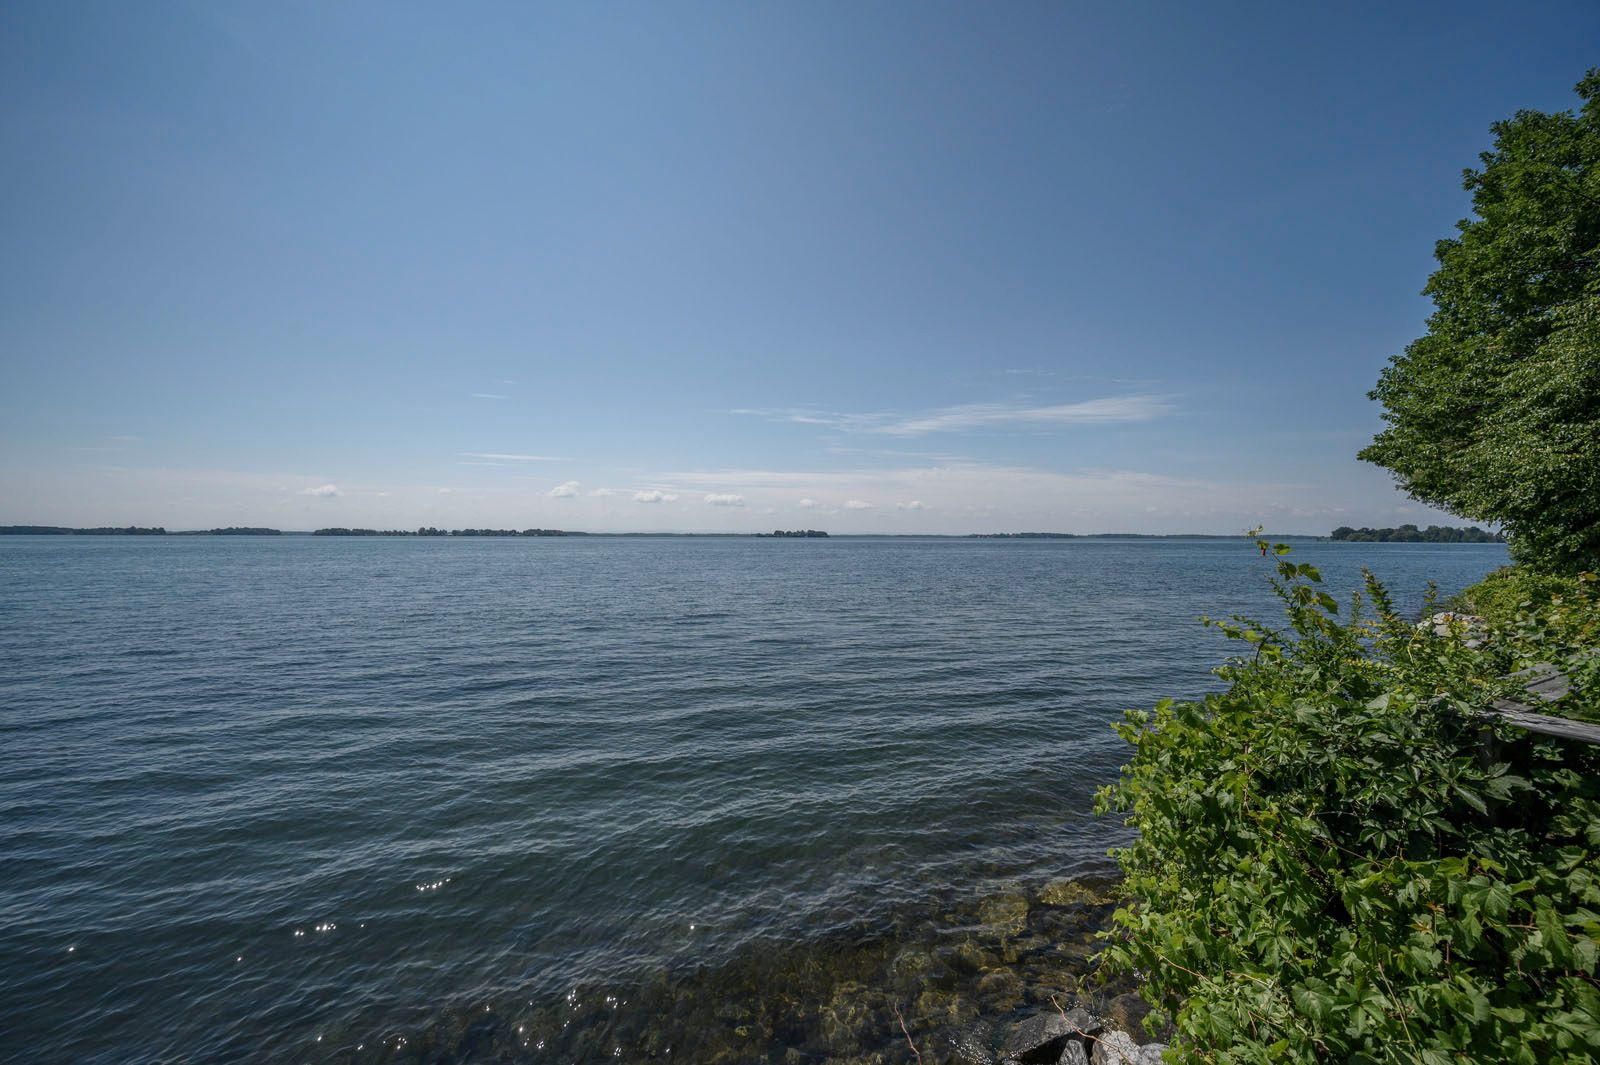 Photo 5: Photos: 54 Hamilton Island Road in Summerstown: Summerstown, ON Recreational for sale (St.Lawrence River)